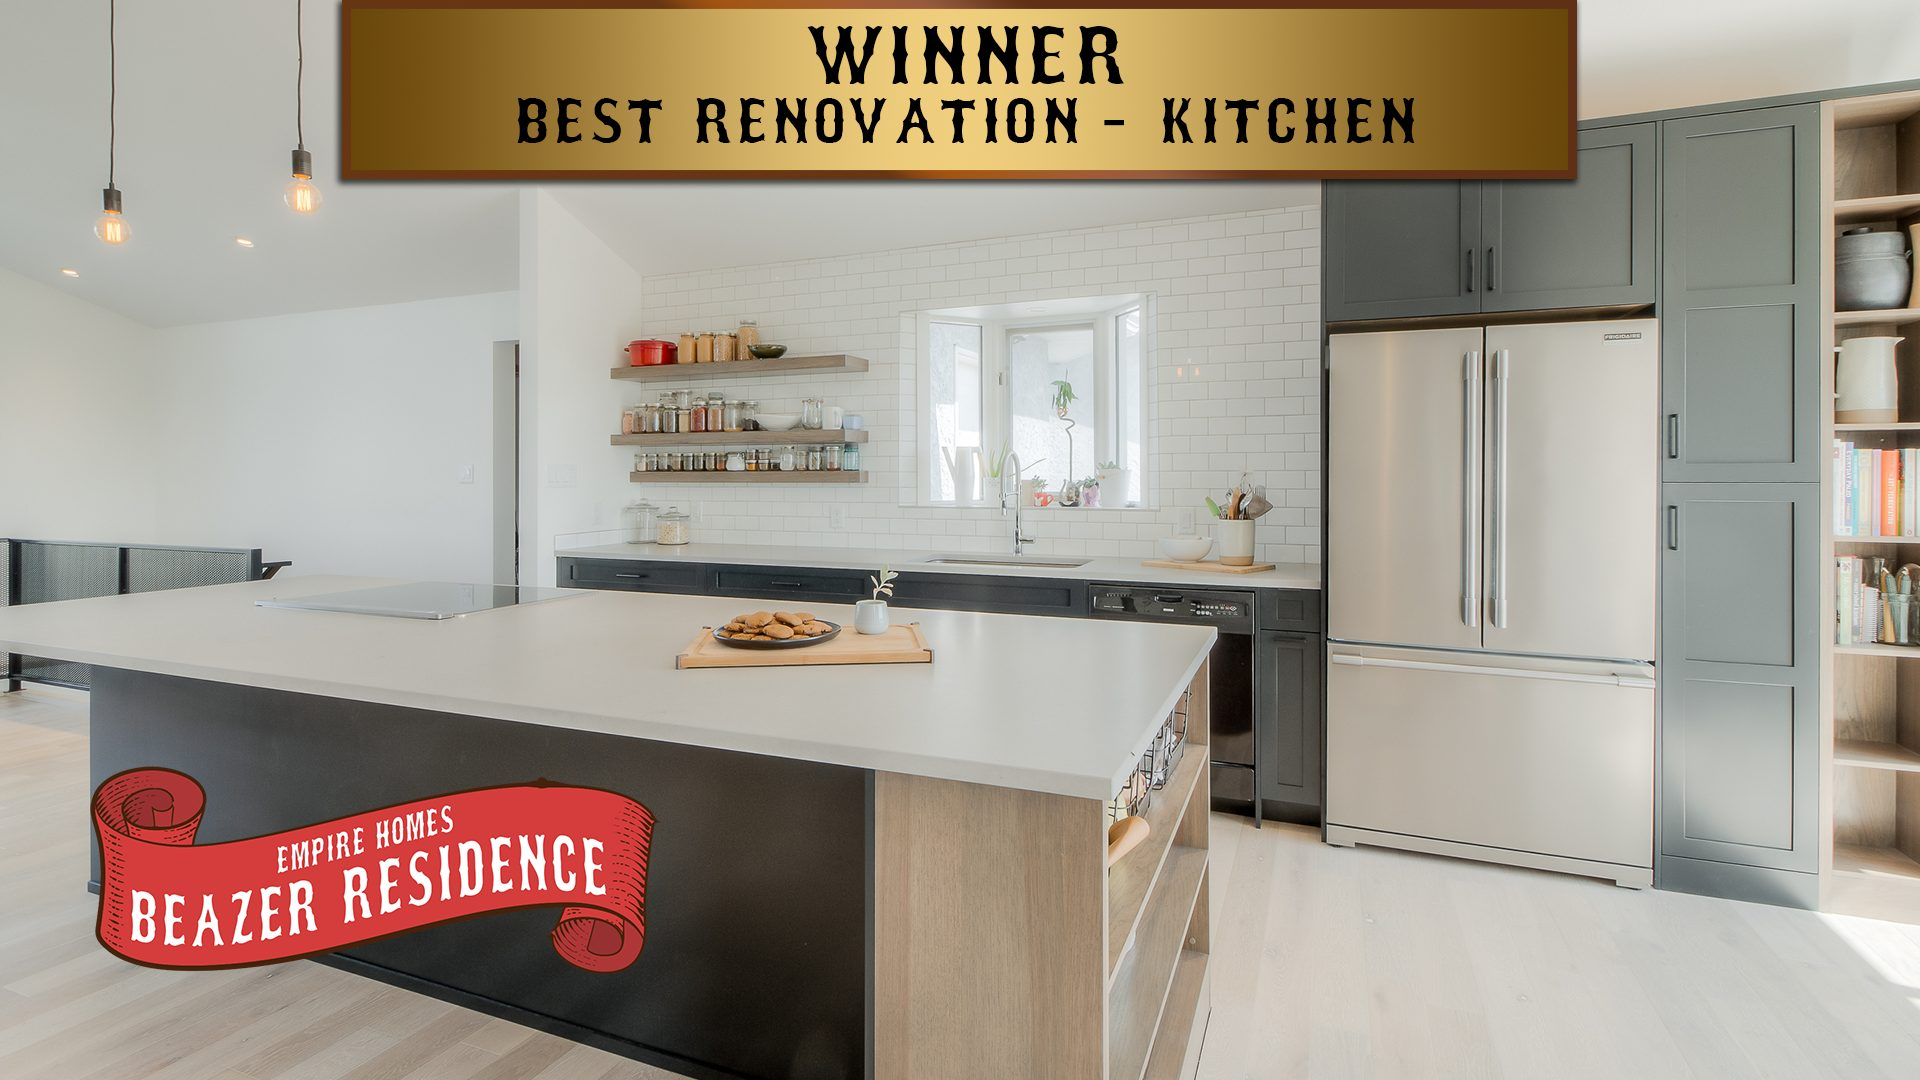 WIN_BestReno_Kitchen